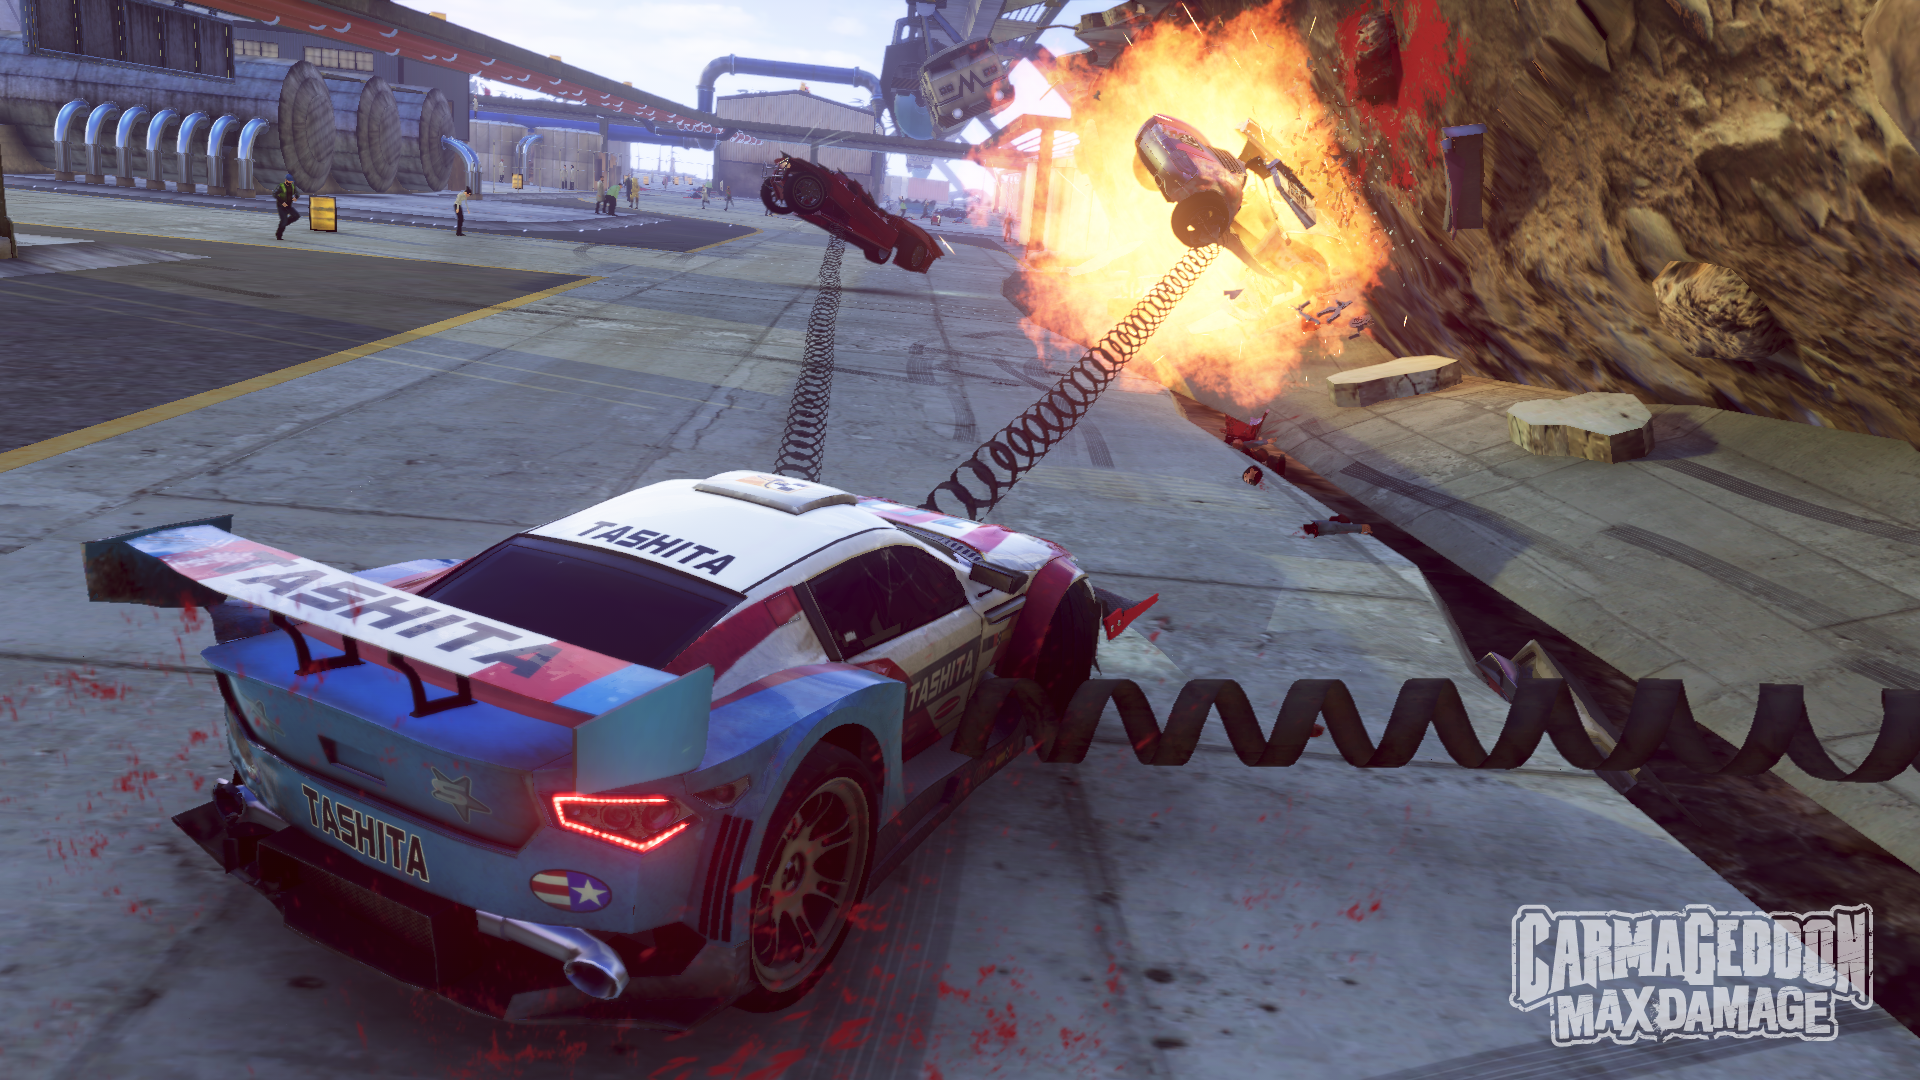 Carmageddon Max Damage powerups screenshot